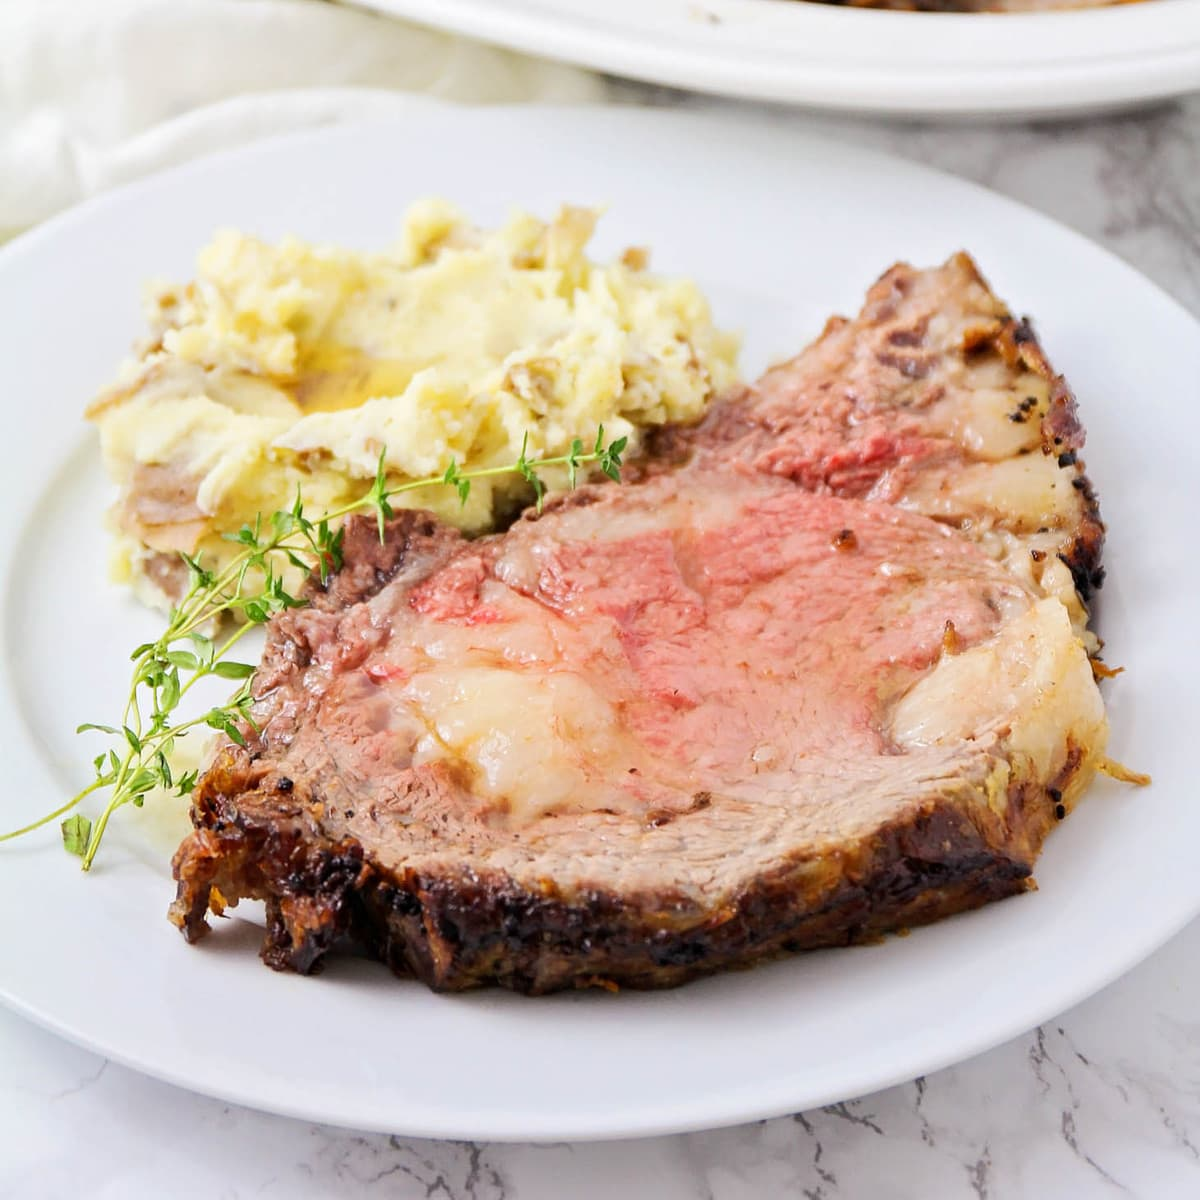 A slice of perfect prime rib on a plate with a side of potatoes